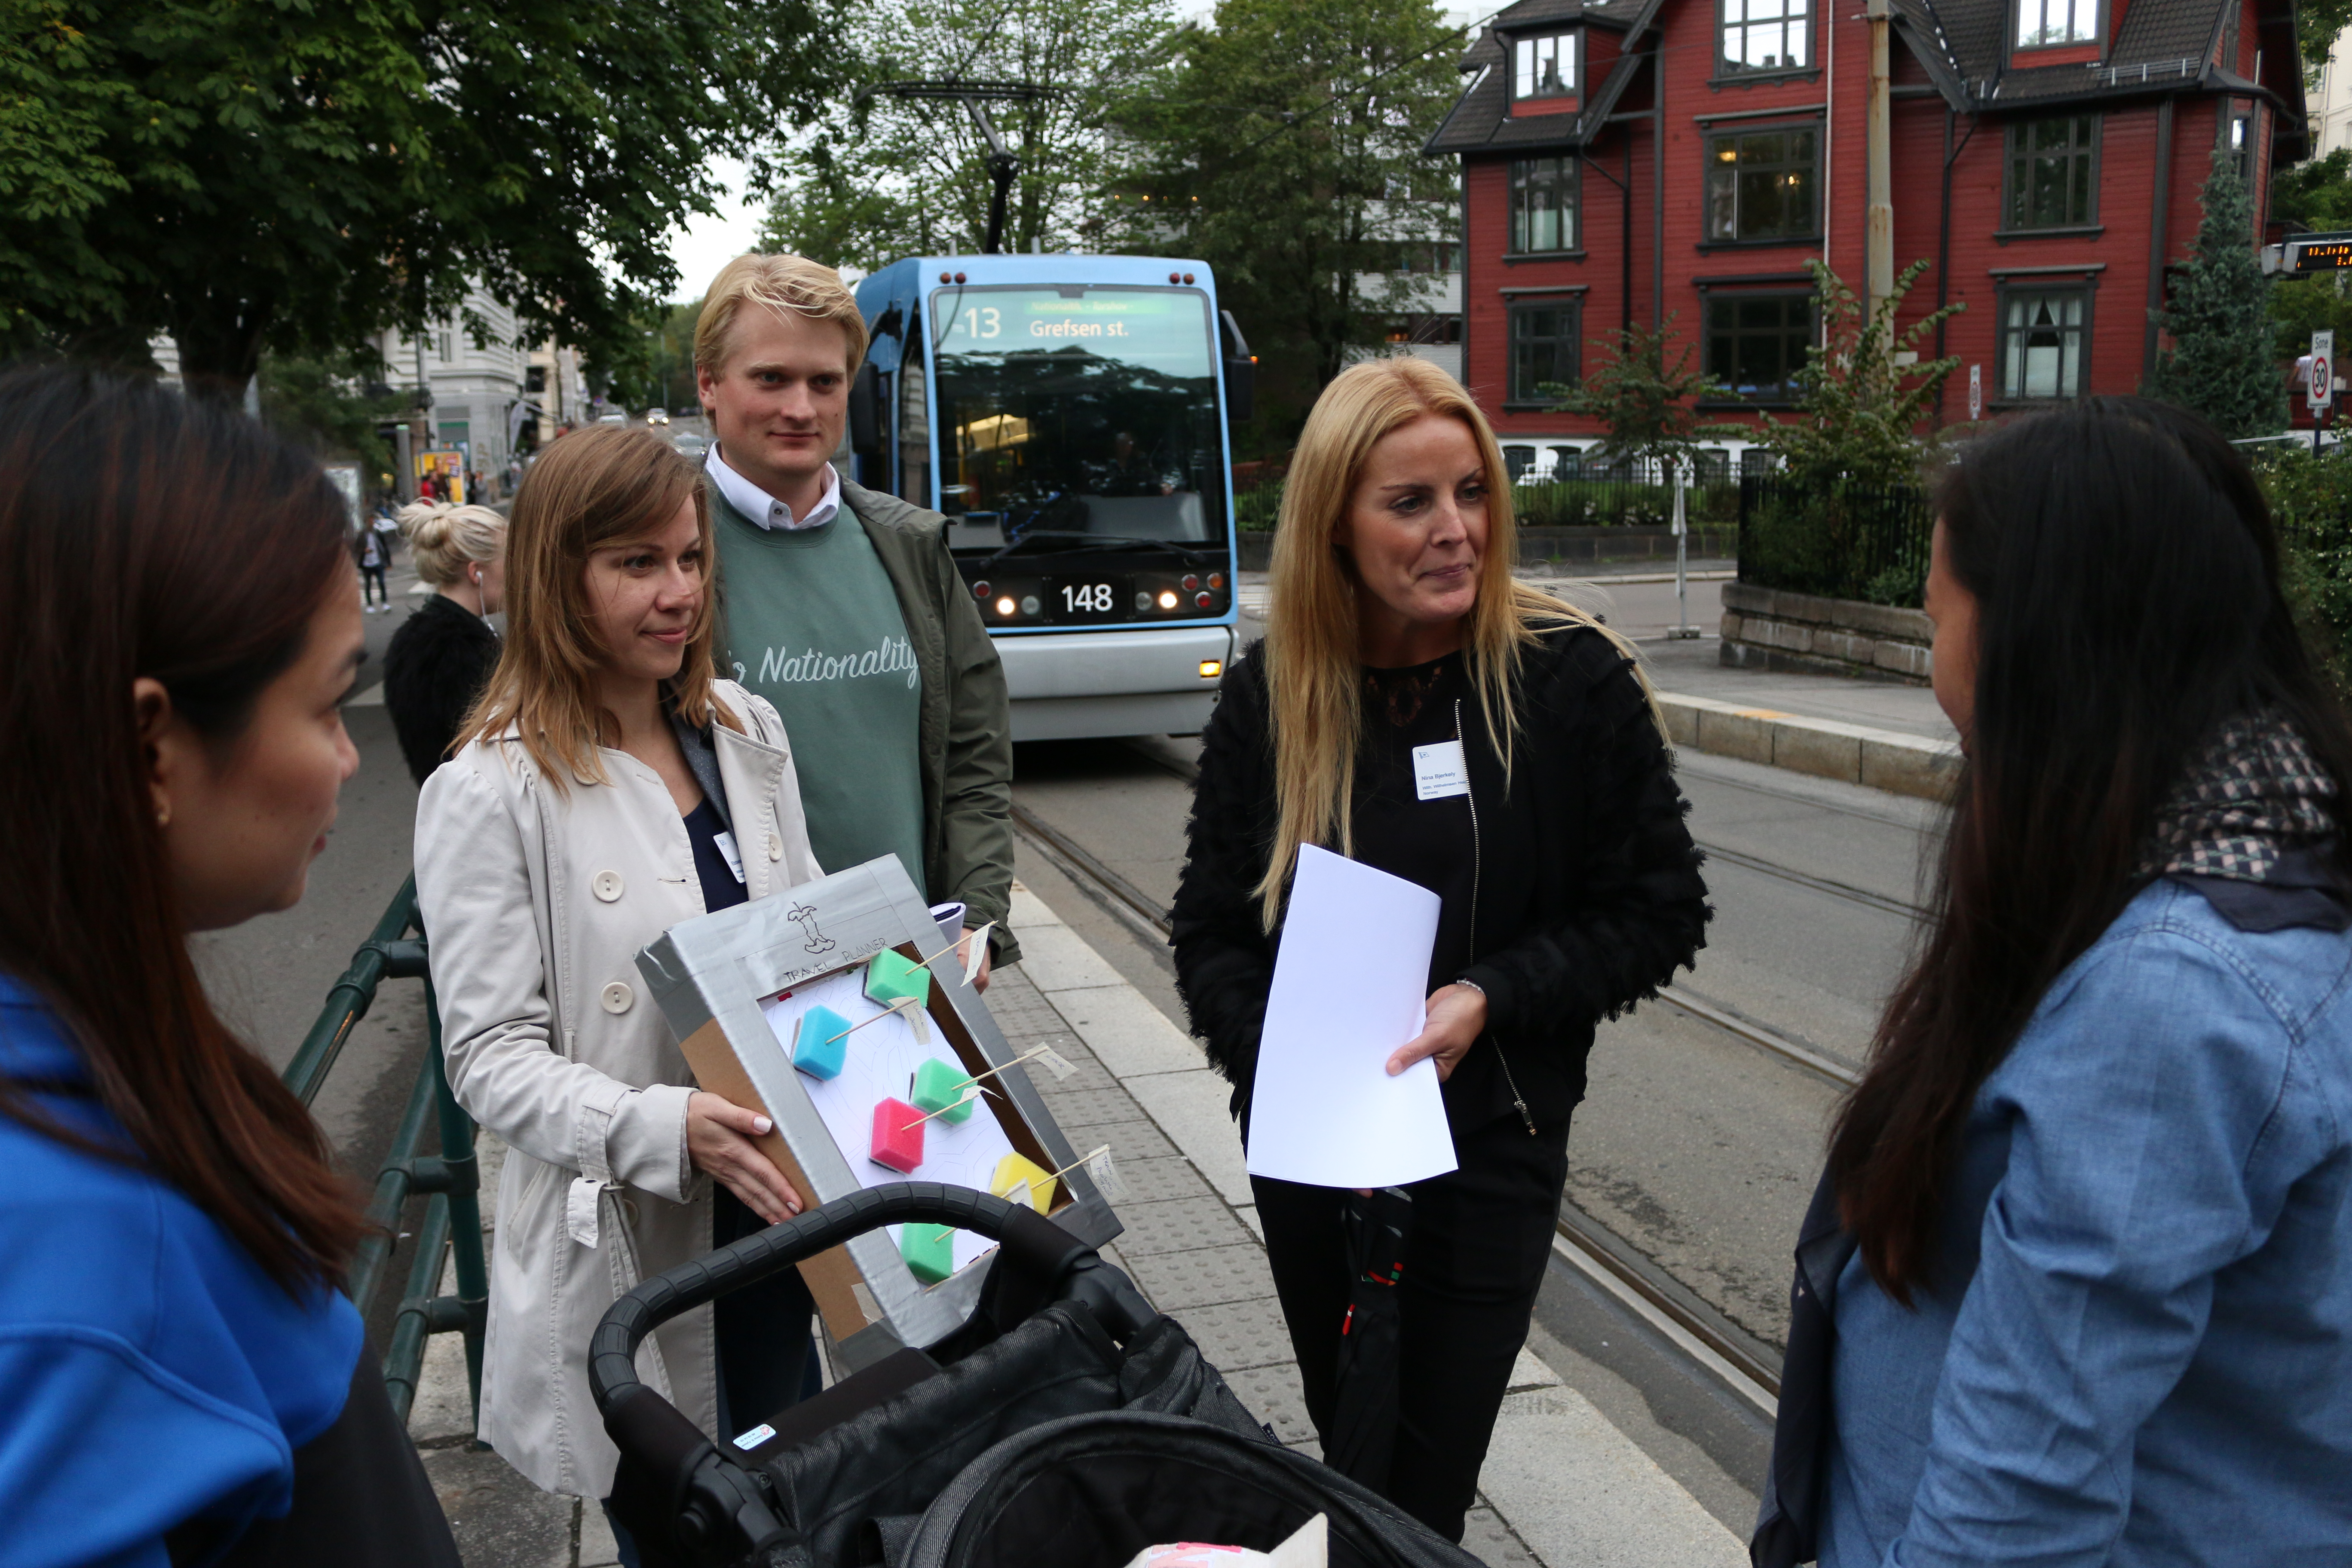 Some of the LePo candidates talking to users of the Oslo public transport system, proposing a solution prototype to test the user experience and sentiment.